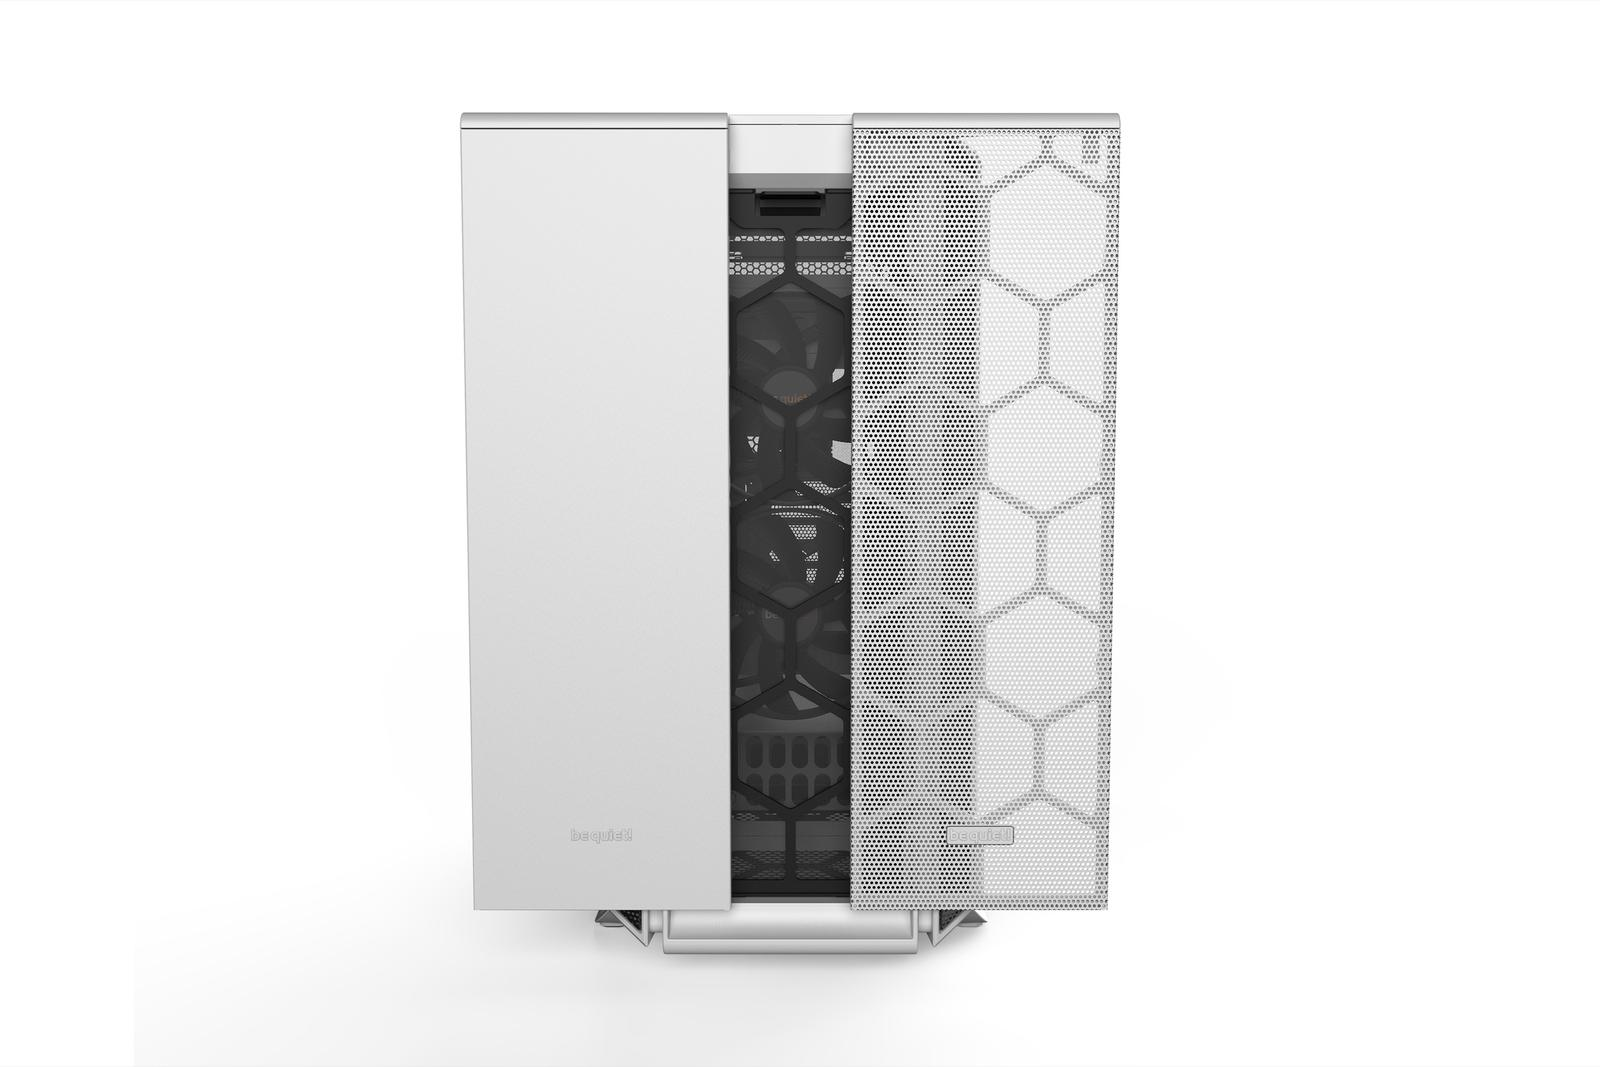 be quiet! Silent Base 802 ATX Mid Tower Case